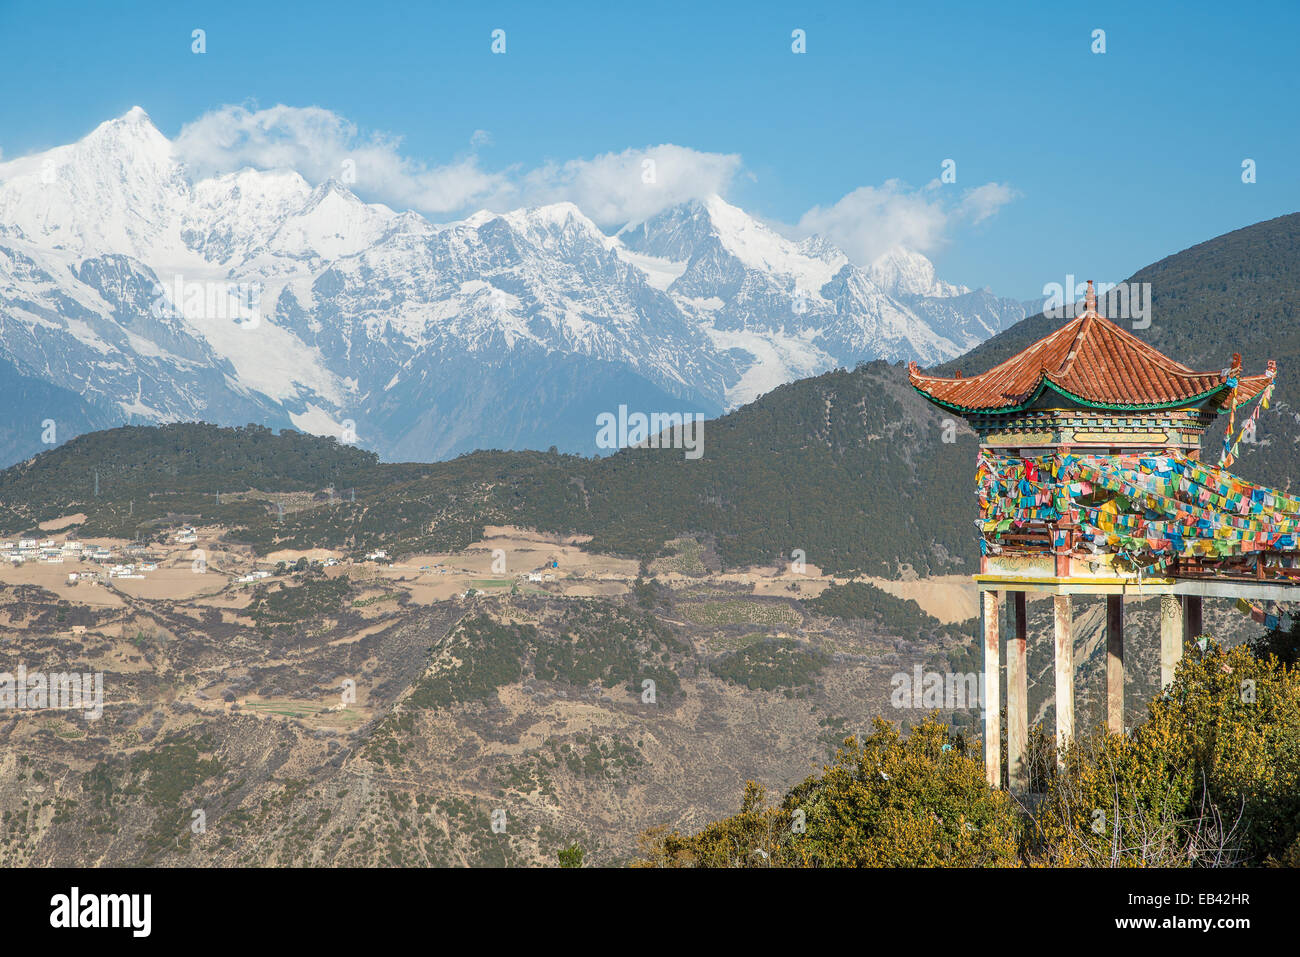 Le pavillon du Tibet et Meili Snow Mountain dans le Yunnan Photo Stock